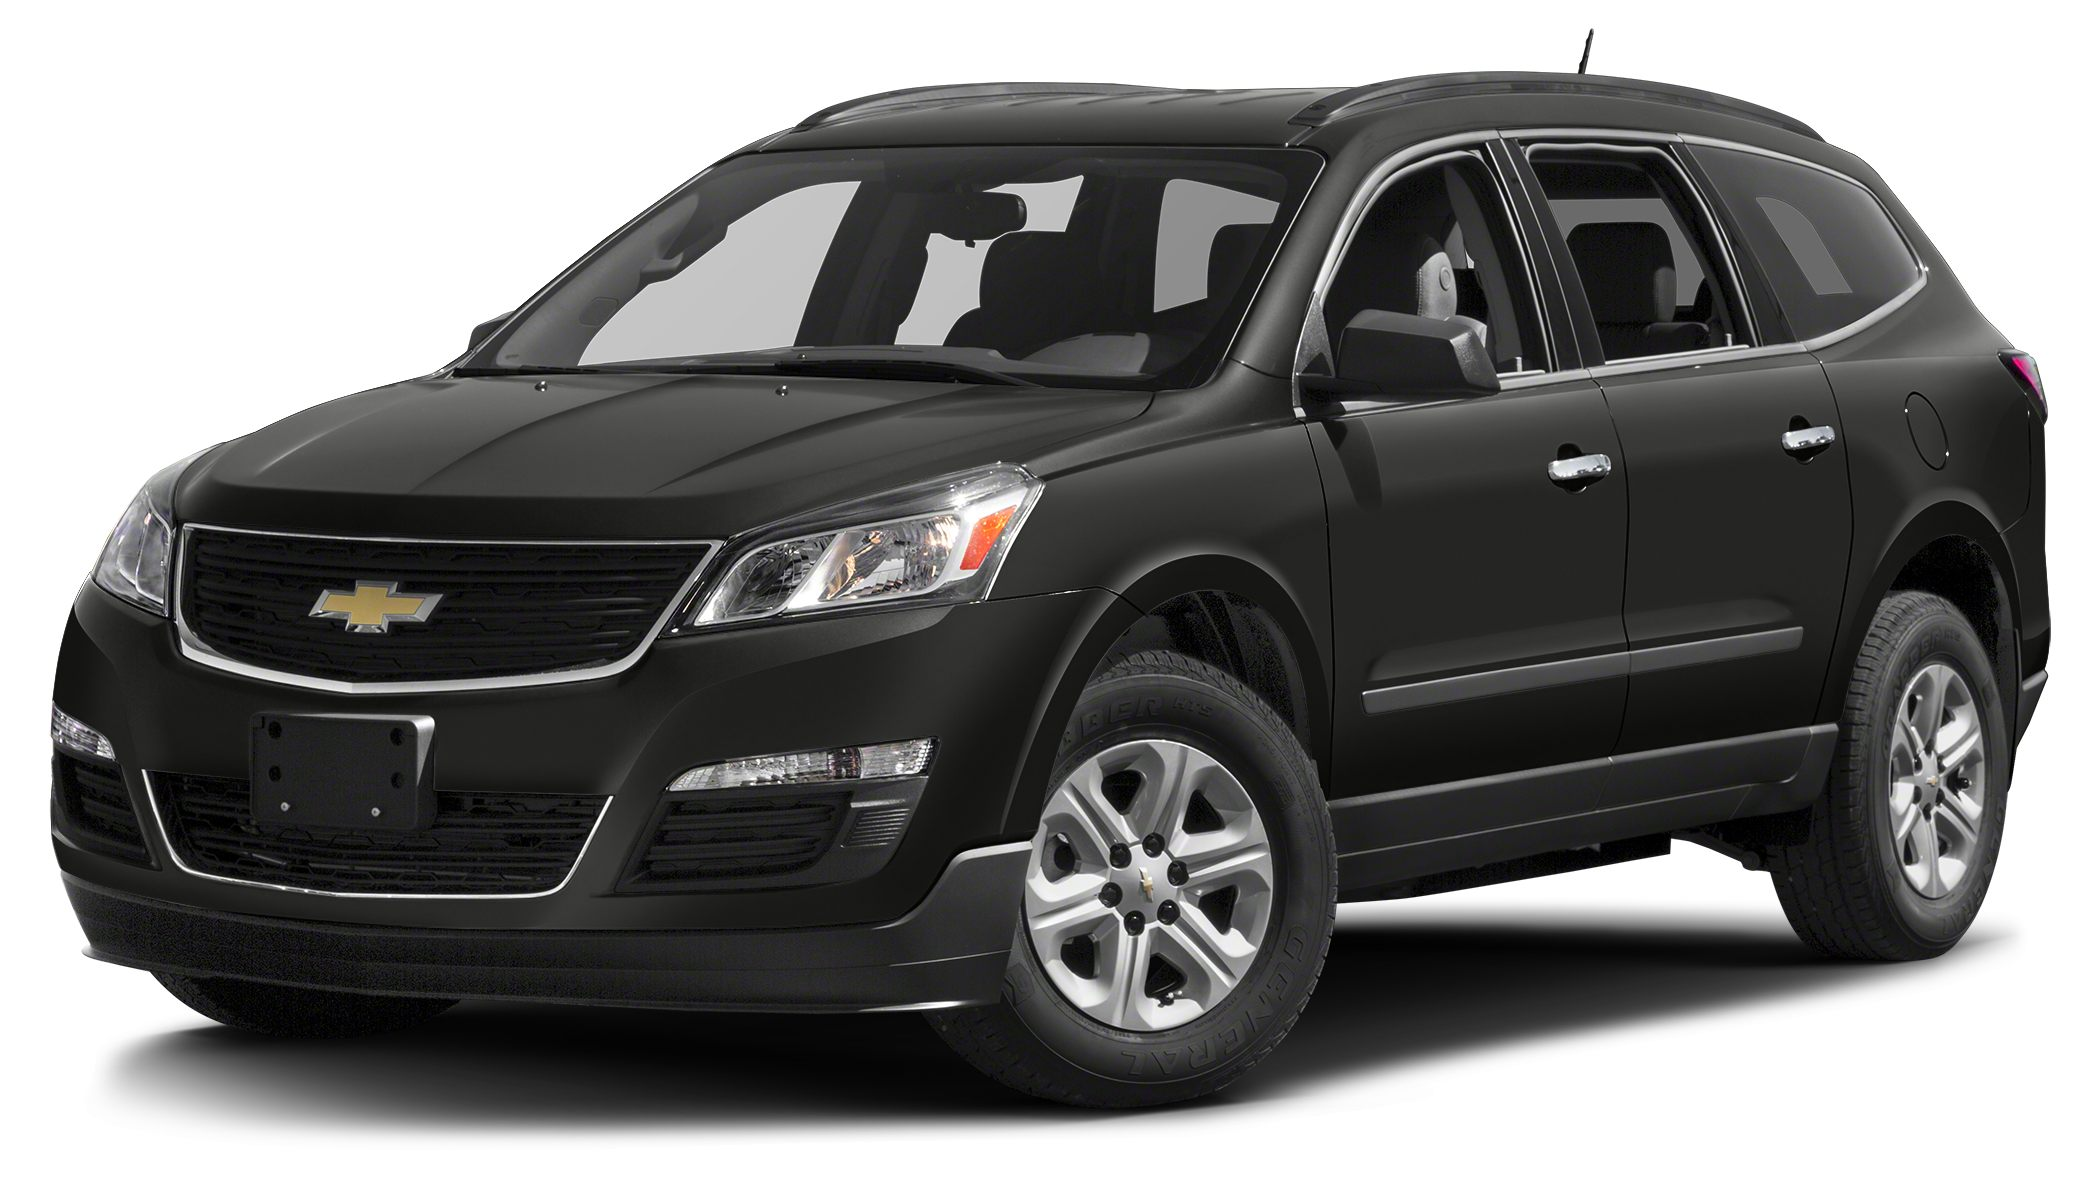 2017 Chevrolet Traverse LS Offering the roominess of a traditional SUV but with car-like handling